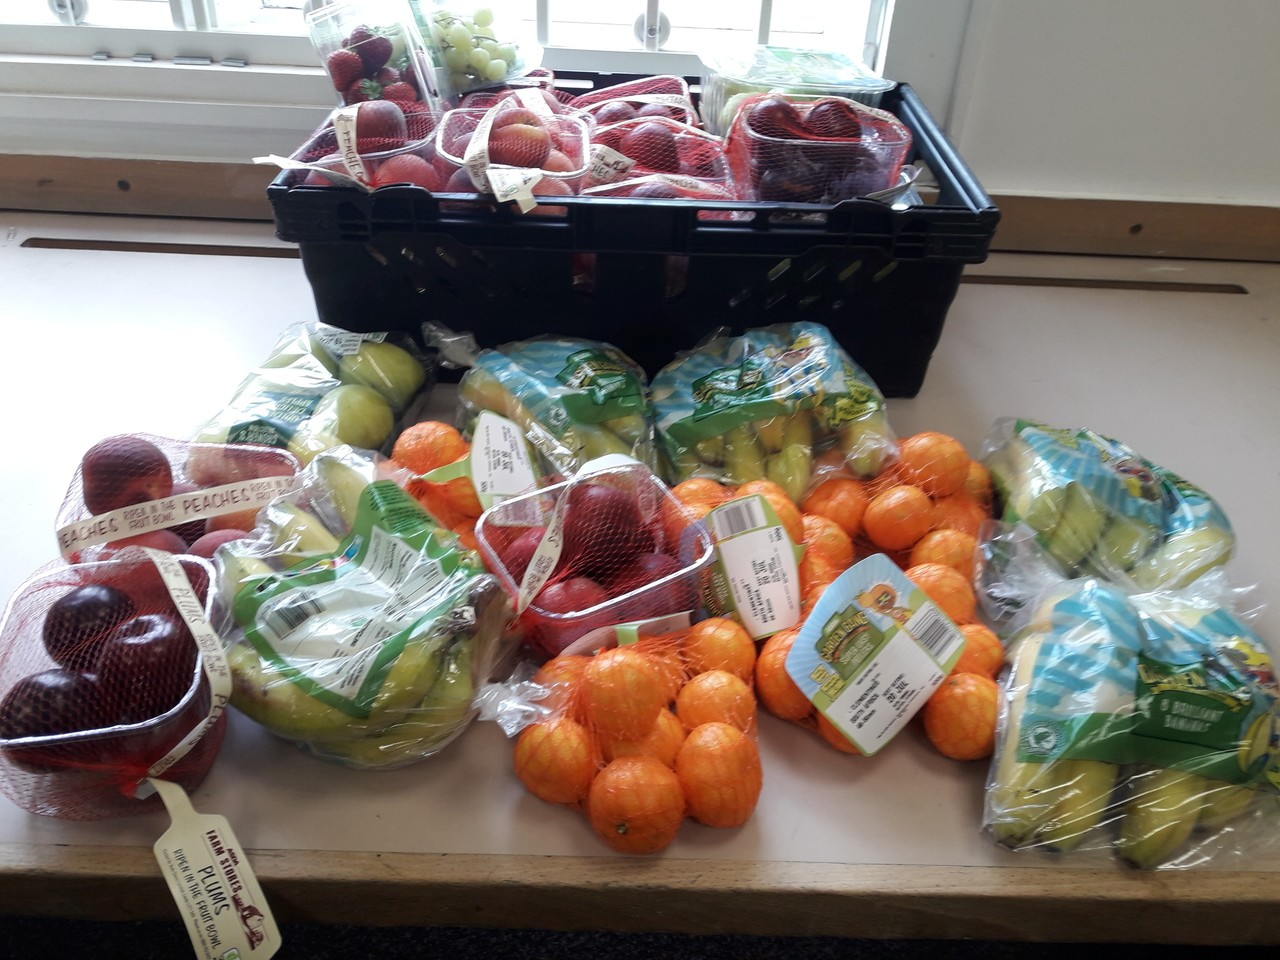 Fruit donation to Friends of Di's Kitchen | Asda Wolverhampton